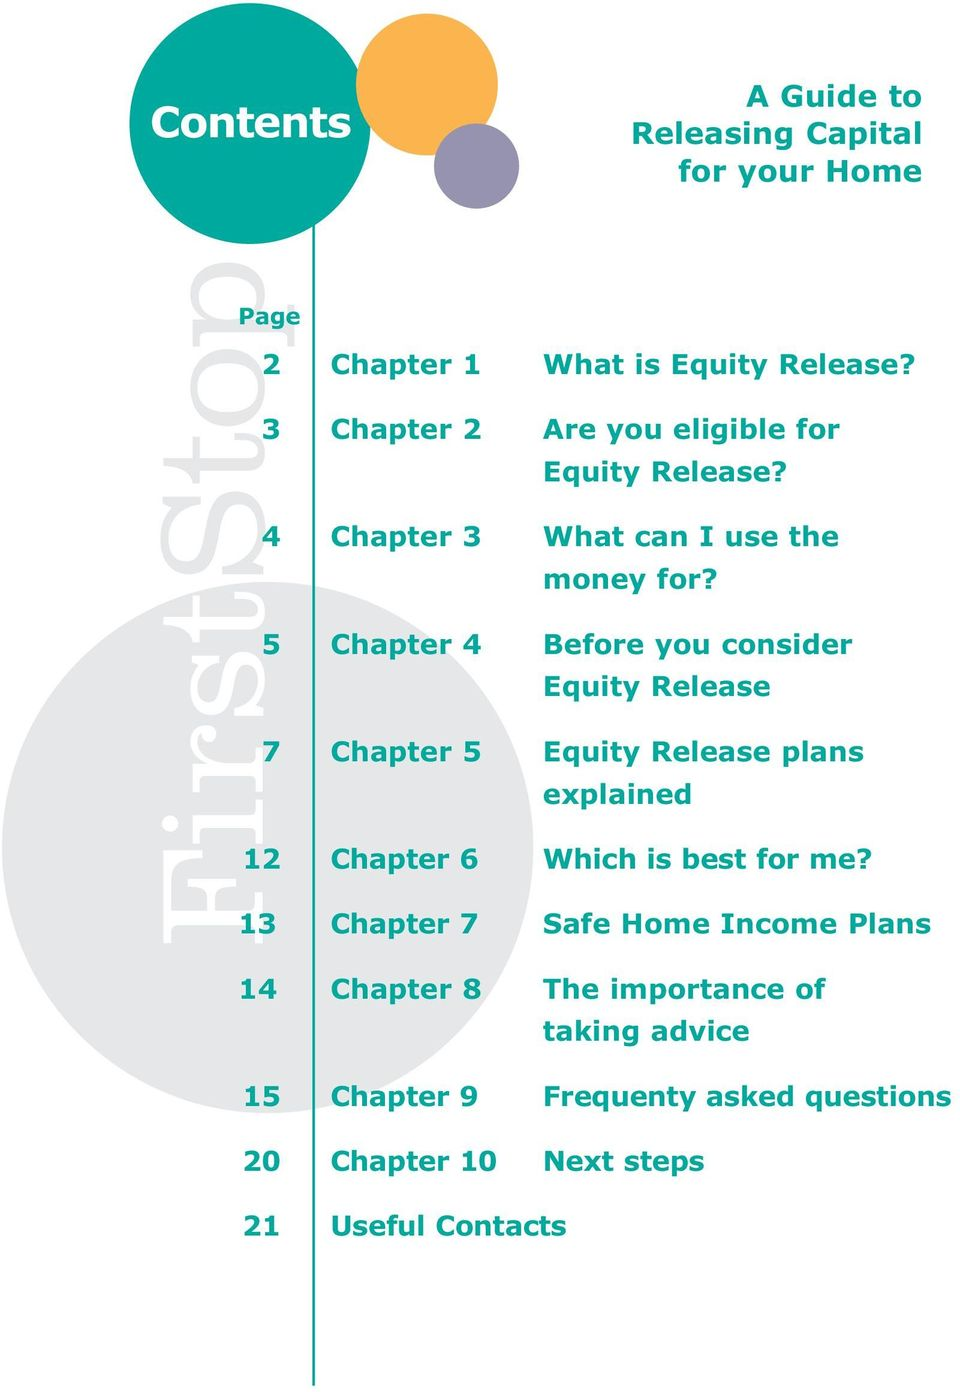 5 Chapter 4 Before you consider Equity Release 7 Chapter 5 Equity Release plans explained 12 Chapter 6 Which is best for